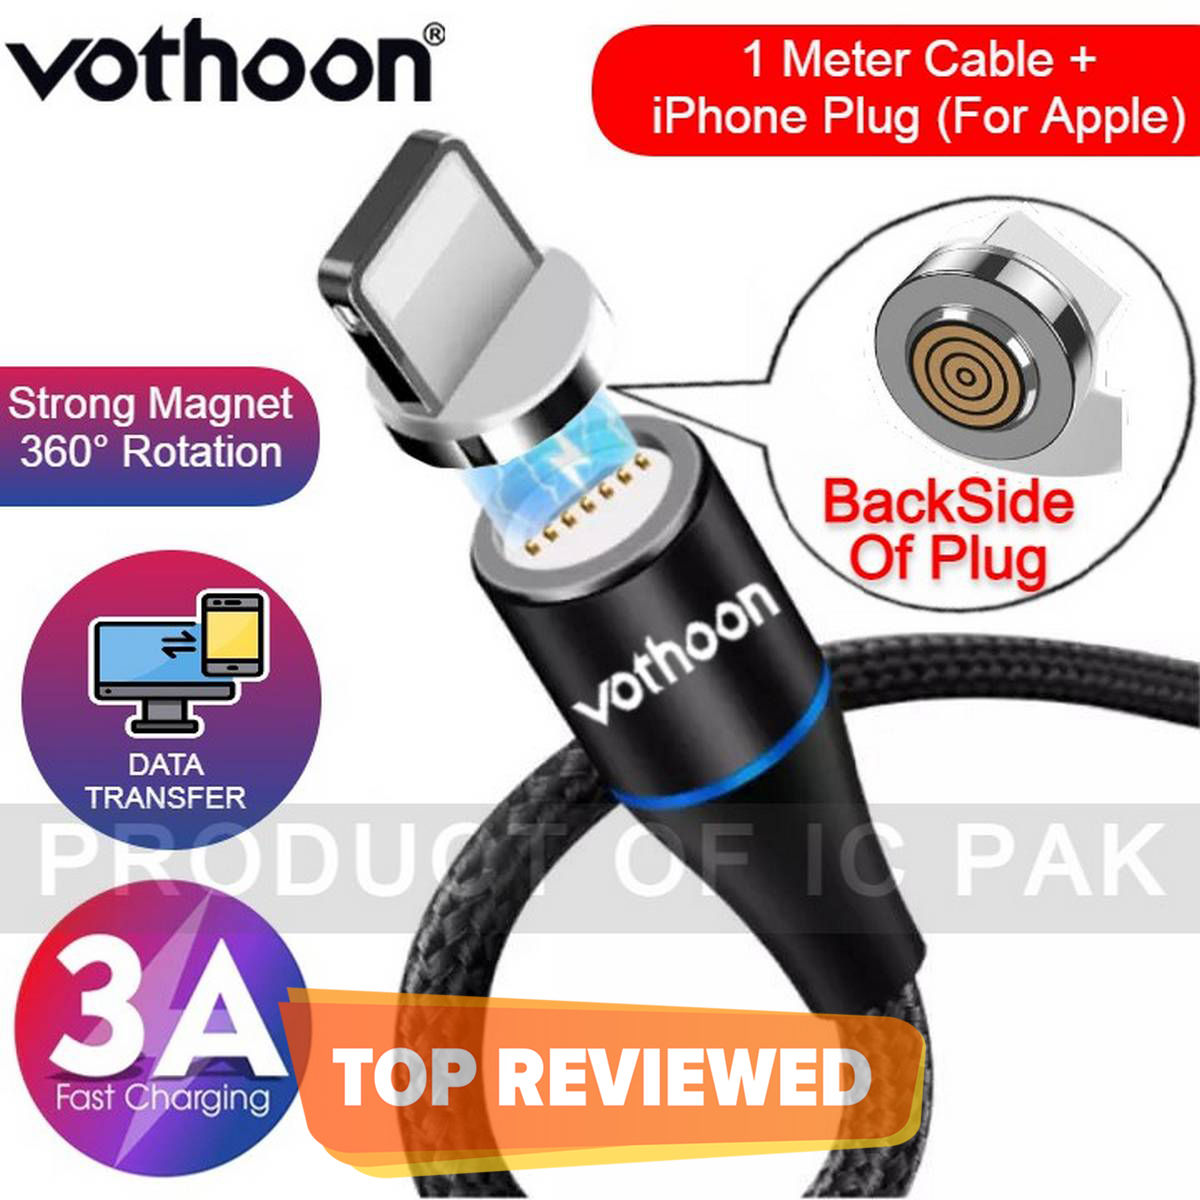 VOTHOON Magnetic Cable Fast Charging Cable Micro USB Type c & iPhone 3A Fast Charging With Data Transfer 7 Pin Connector 360 Degree Rotation LED Indication | 1 Meter Length | 2 Meter Length